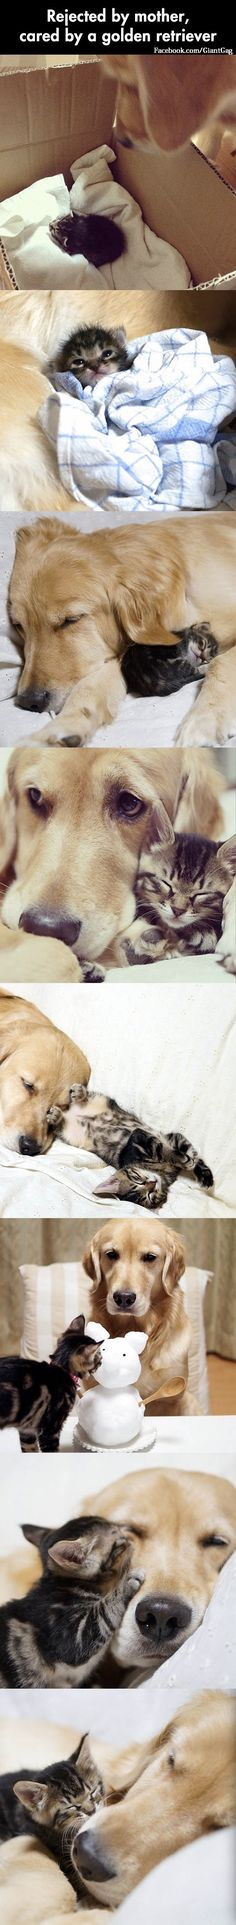 Images of the day, 70 pics. Rejected By Mother, Cared By A Golden Retreiver